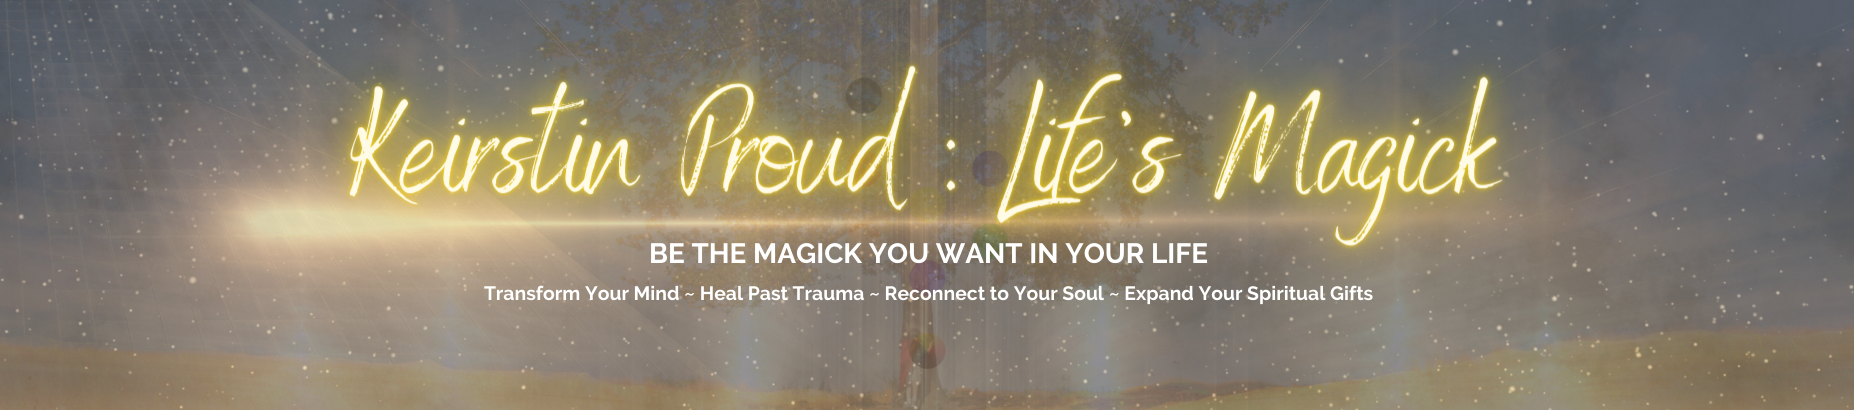 Website banner Life's Magick.png